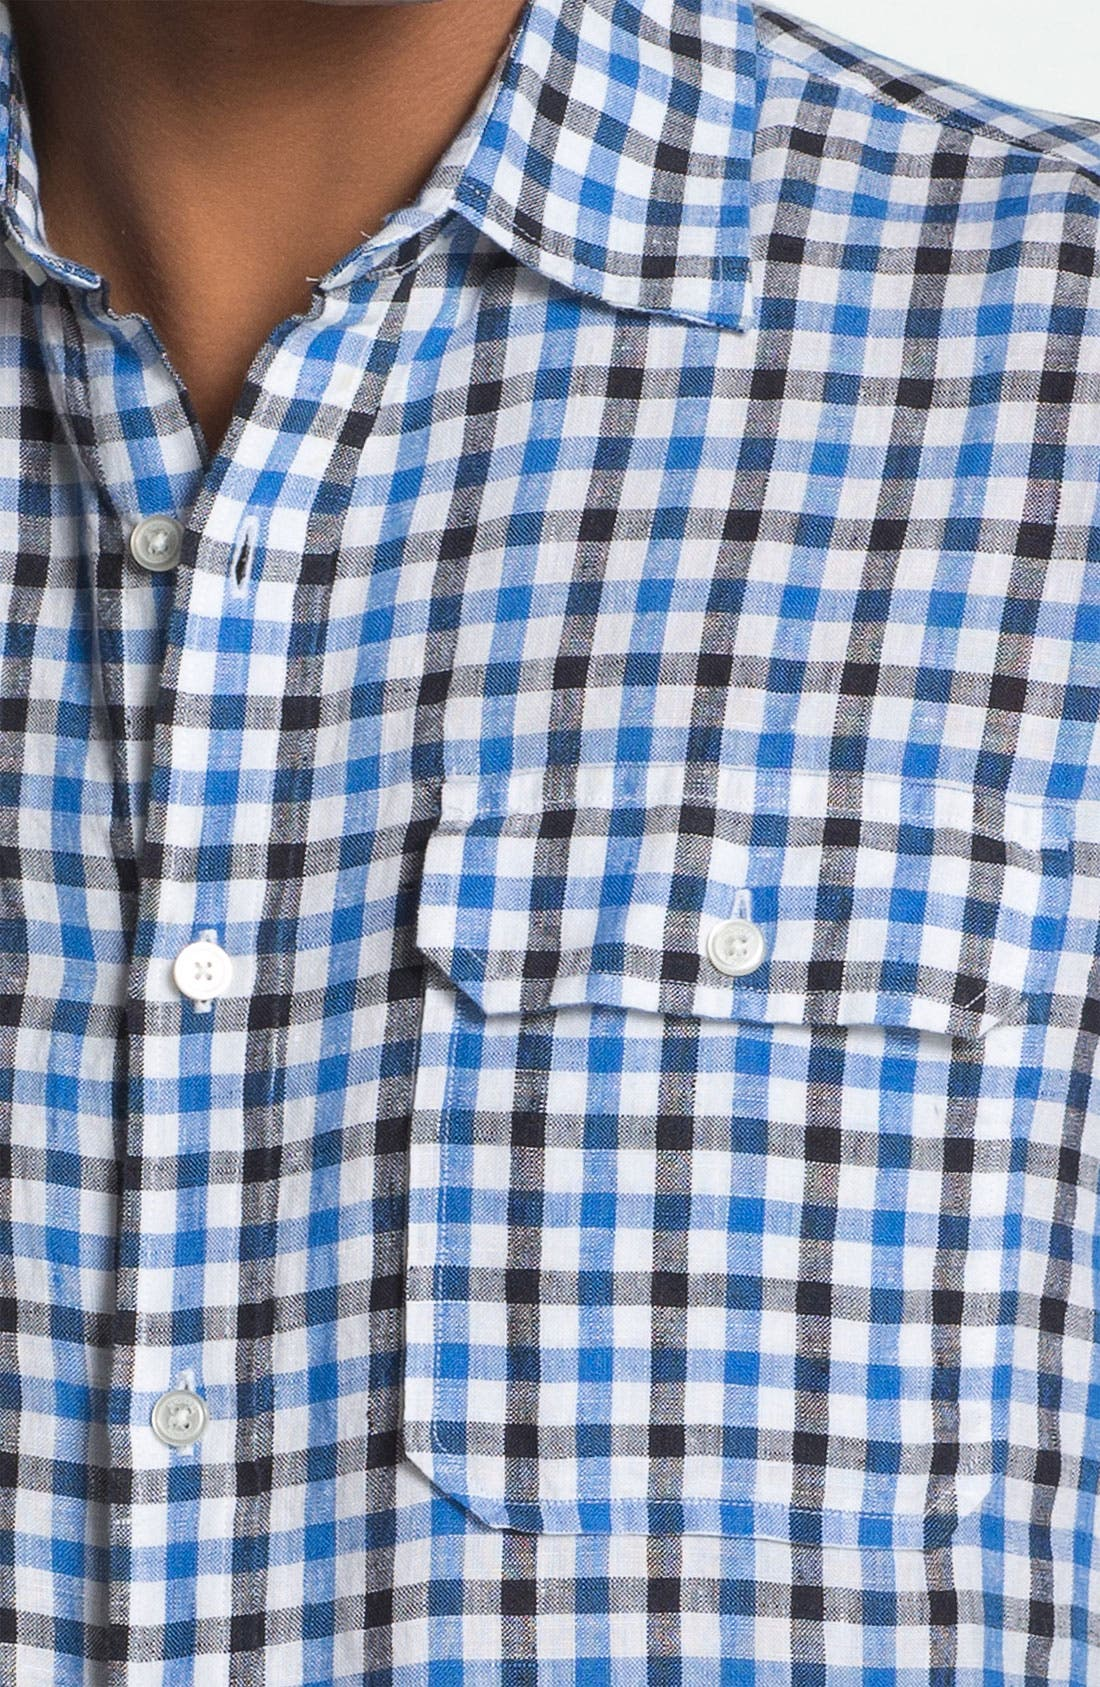 Alternate Image 3  - Michael Kors 'Percy Check' Tailored Fit Sport Shirt